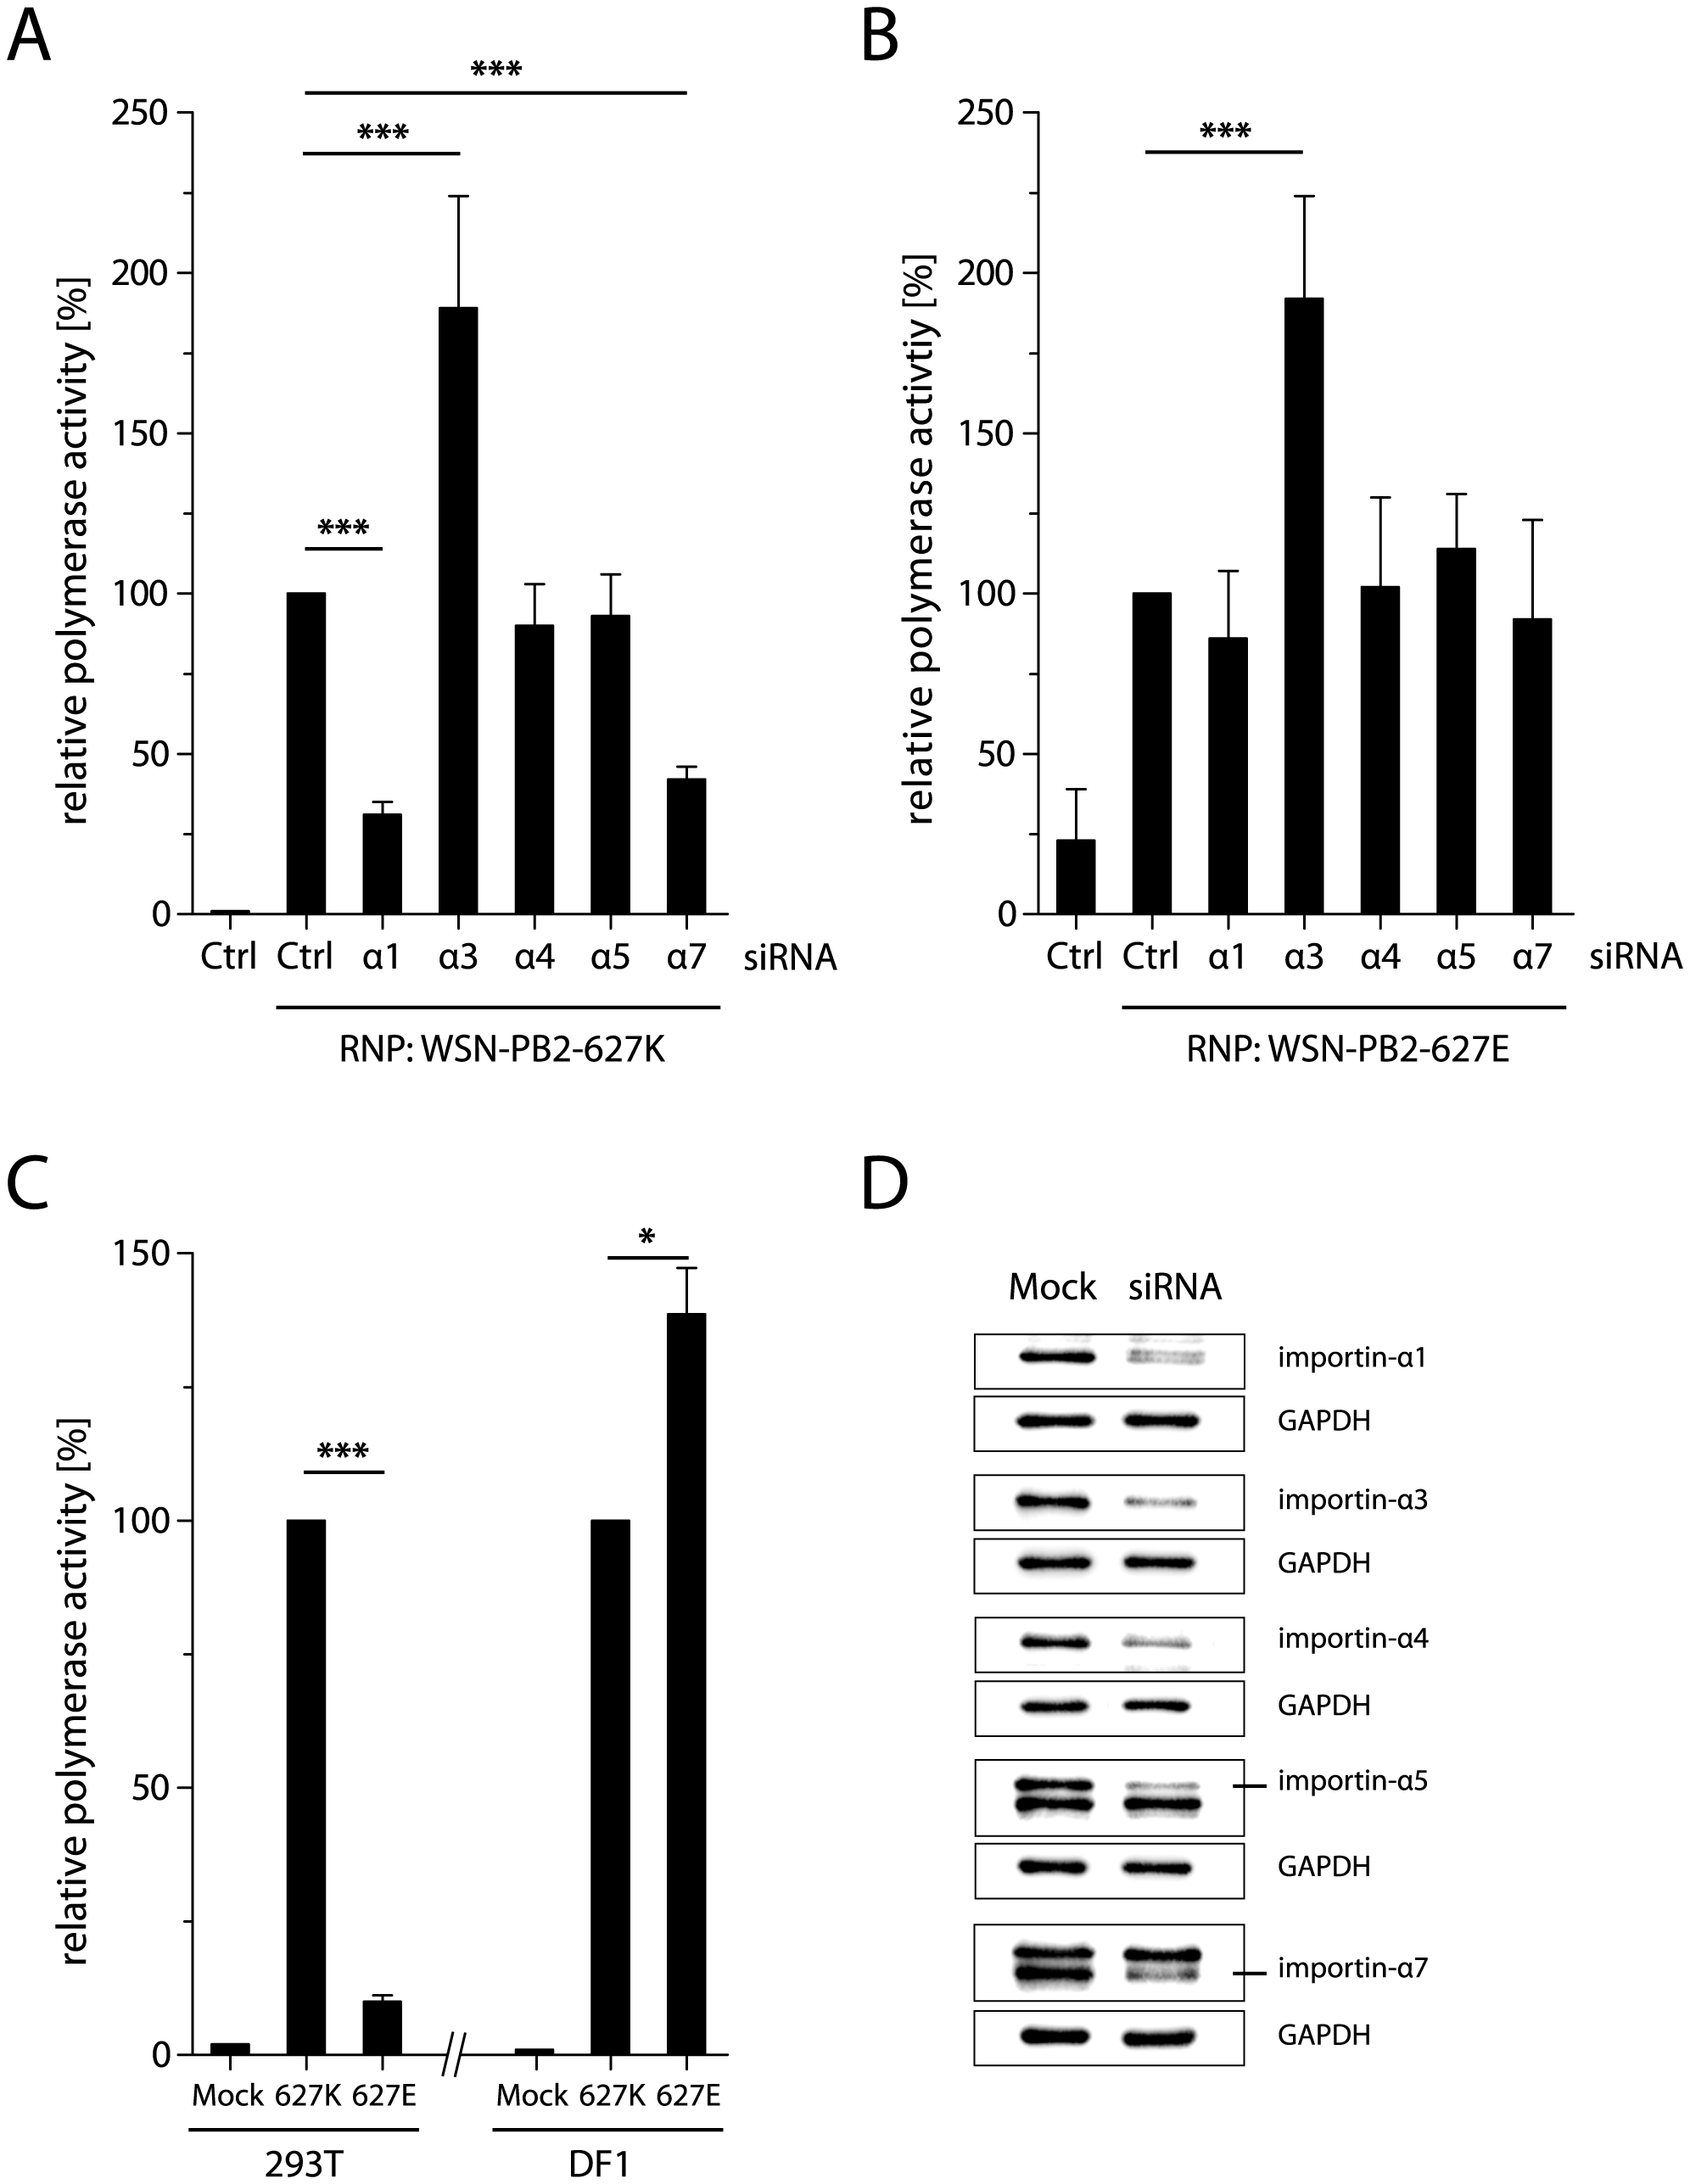 Importin-α1 and -α7 are required for human-like polymerase activity in human cells.